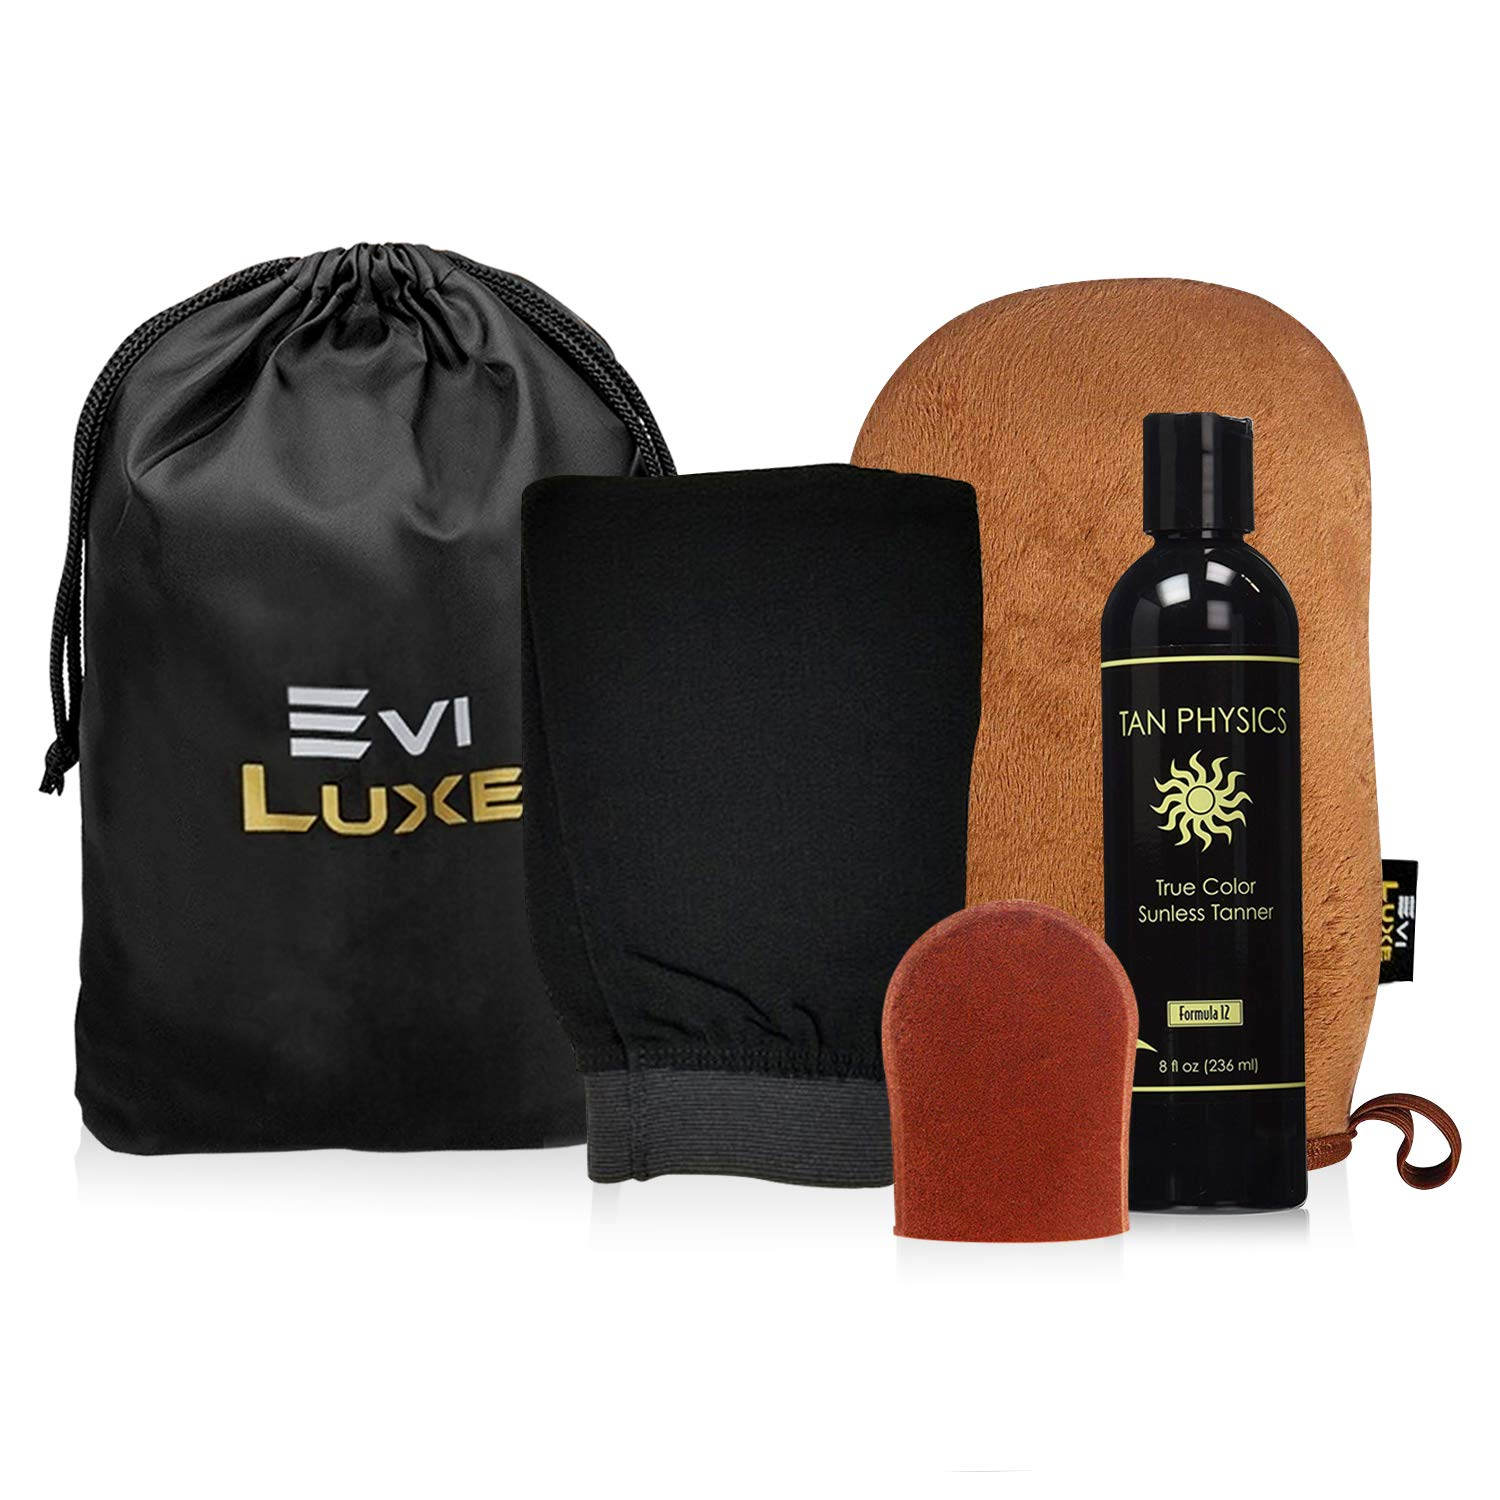 Tan Physics & EviLuxe Deluxe Tanning Mitt Bundle (5pcs) - Face & Body Tanner Mitts, Exfoliation Glove, Storage Bag & 8oz True Color Sunless Tanning Lotion - For Flawless Sun Kissed Skin All Year Long